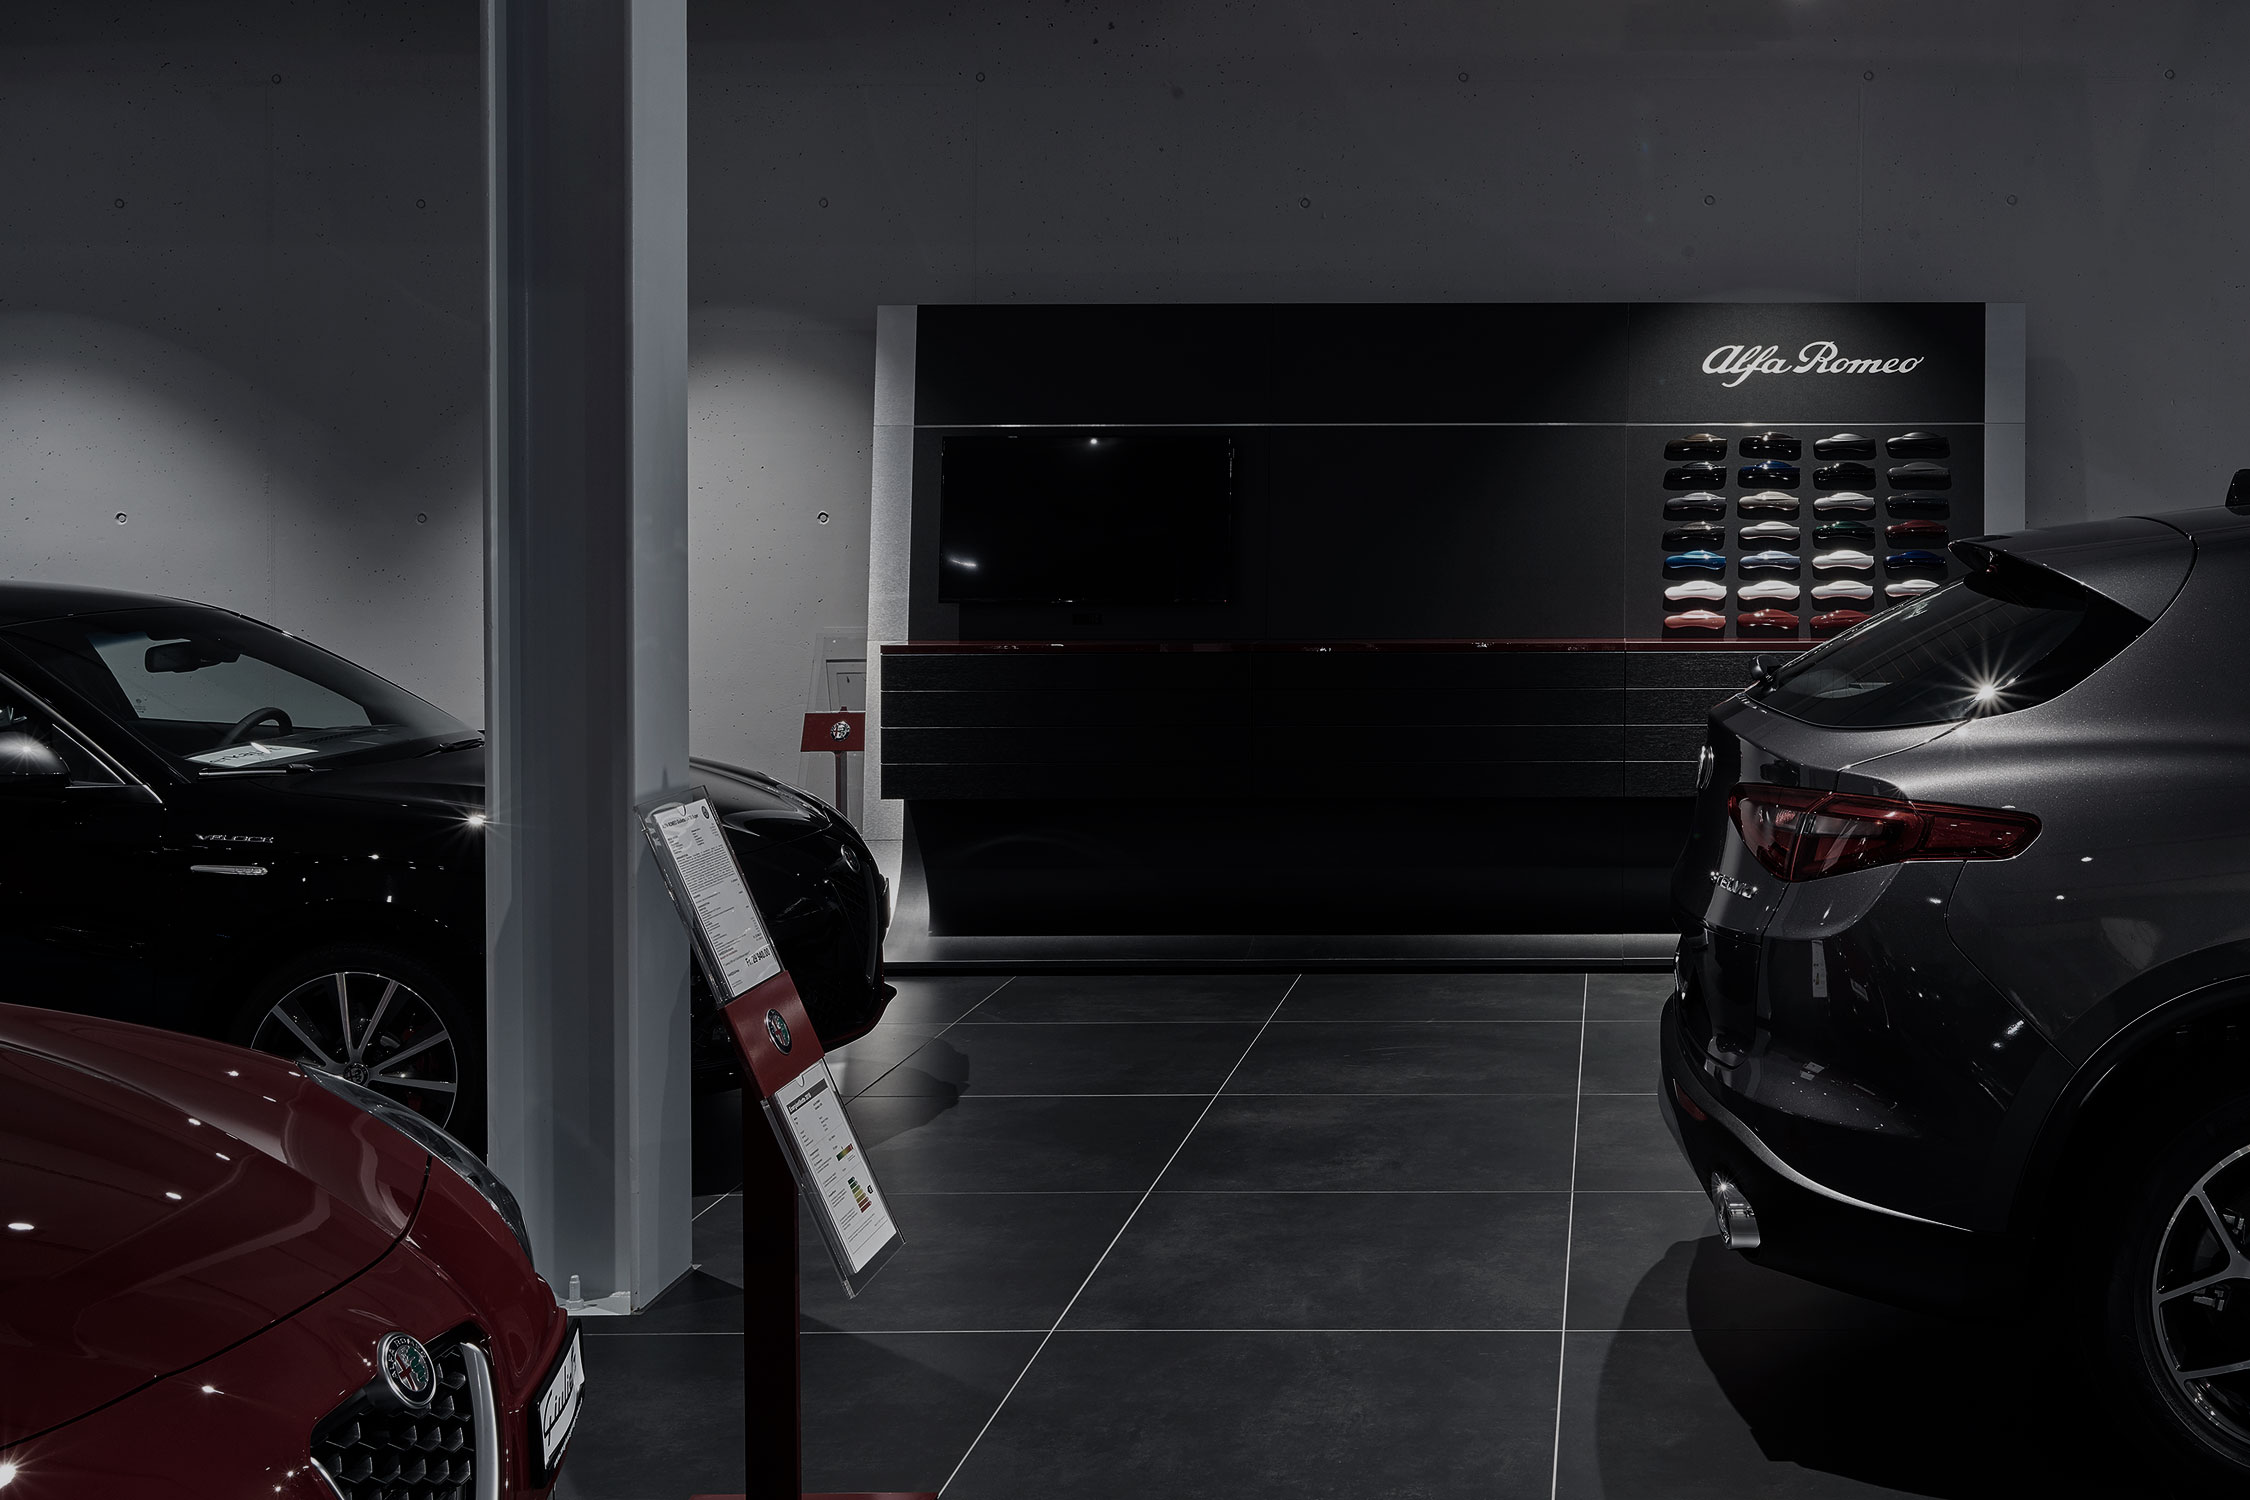 alfa-romeo-showroom-header.jpg